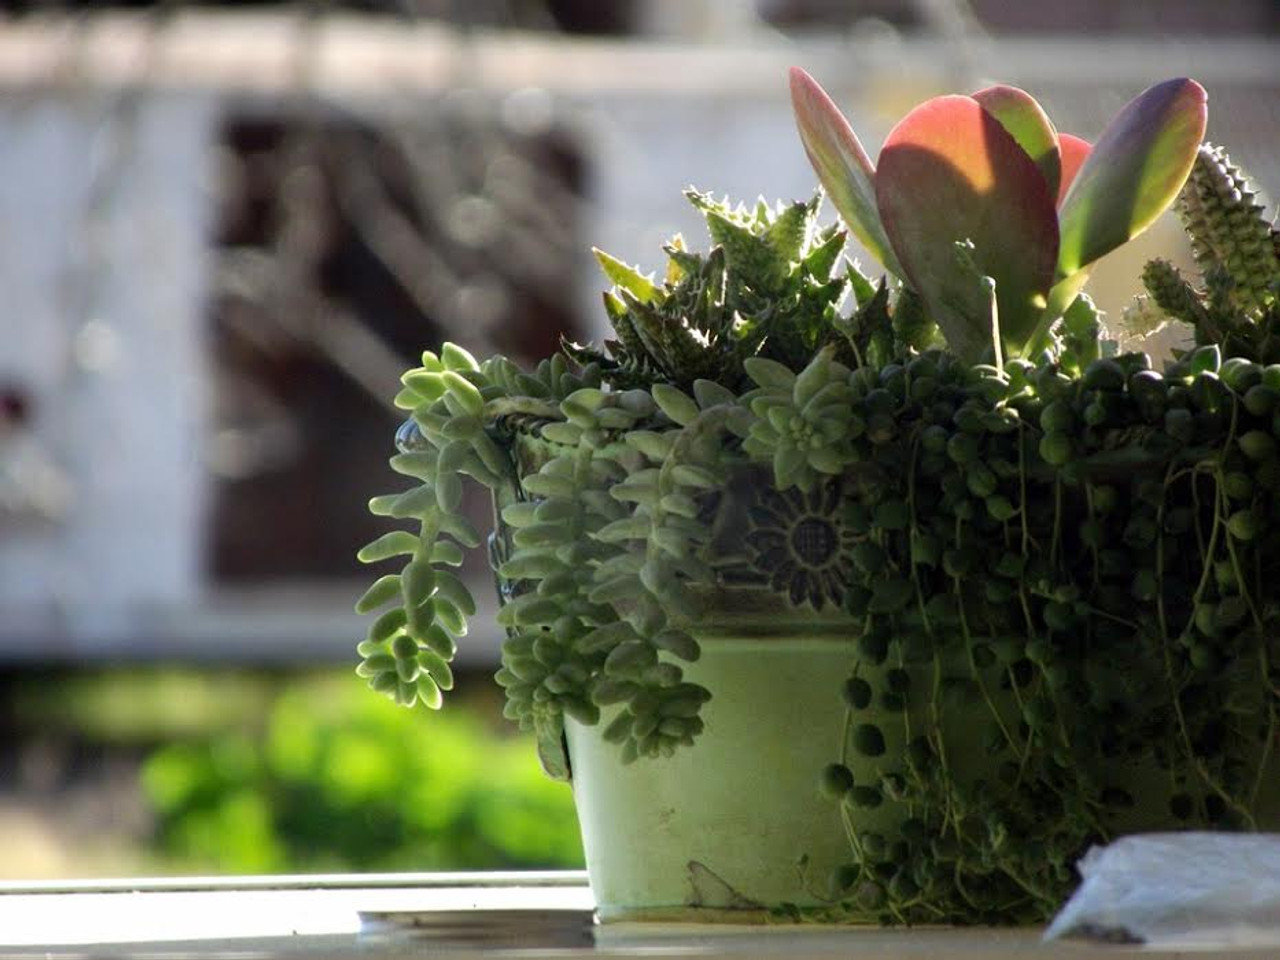 Turn Your Home or Office into an Oasis with Houseplants